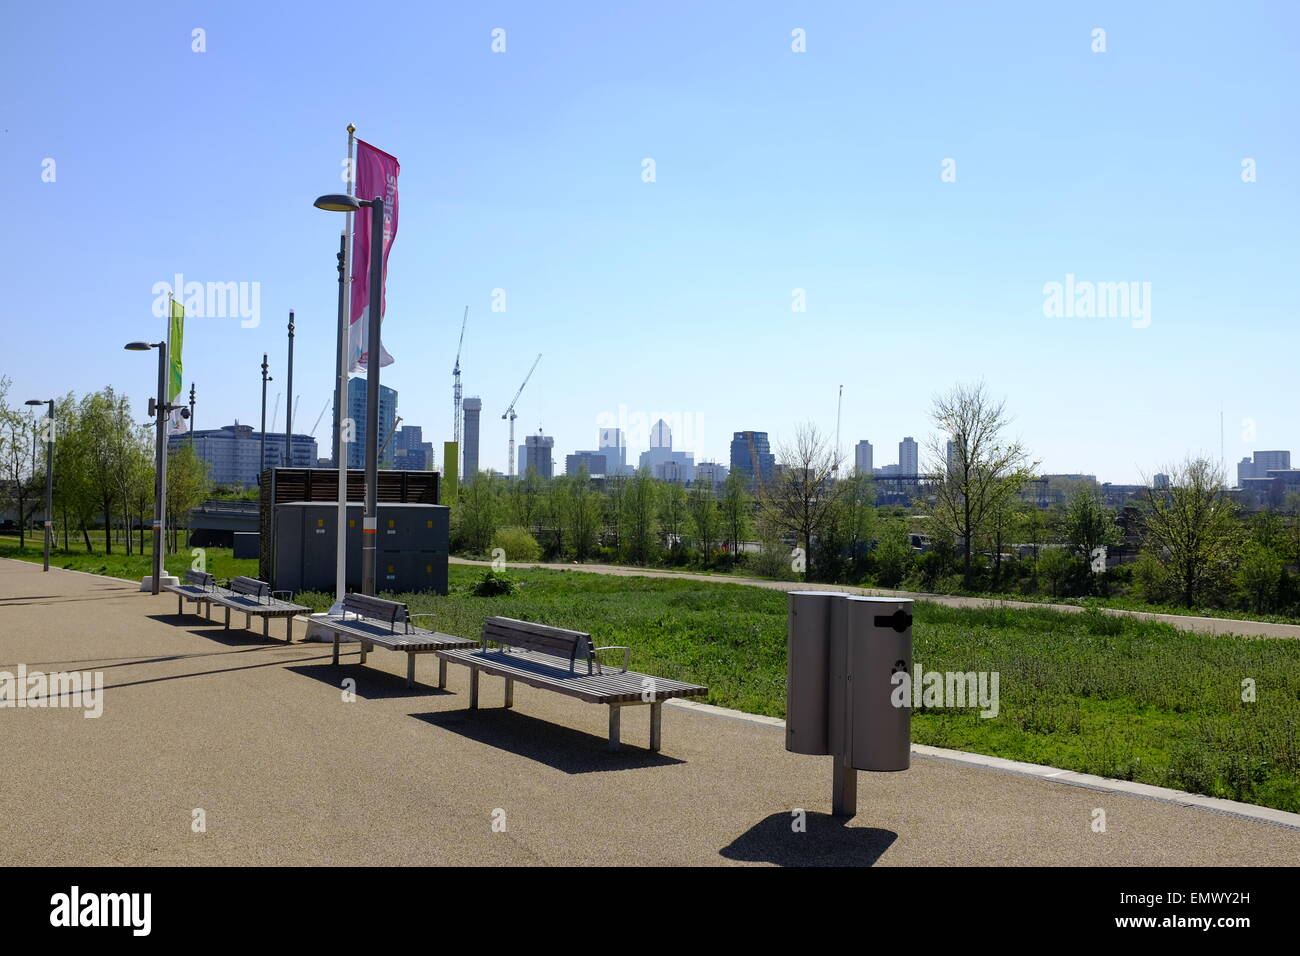 Queen Elizabeth II Olympic Park, in London, United Kingdom, is a sporting complex built for the 2012 Summer Olympics - Stock Image